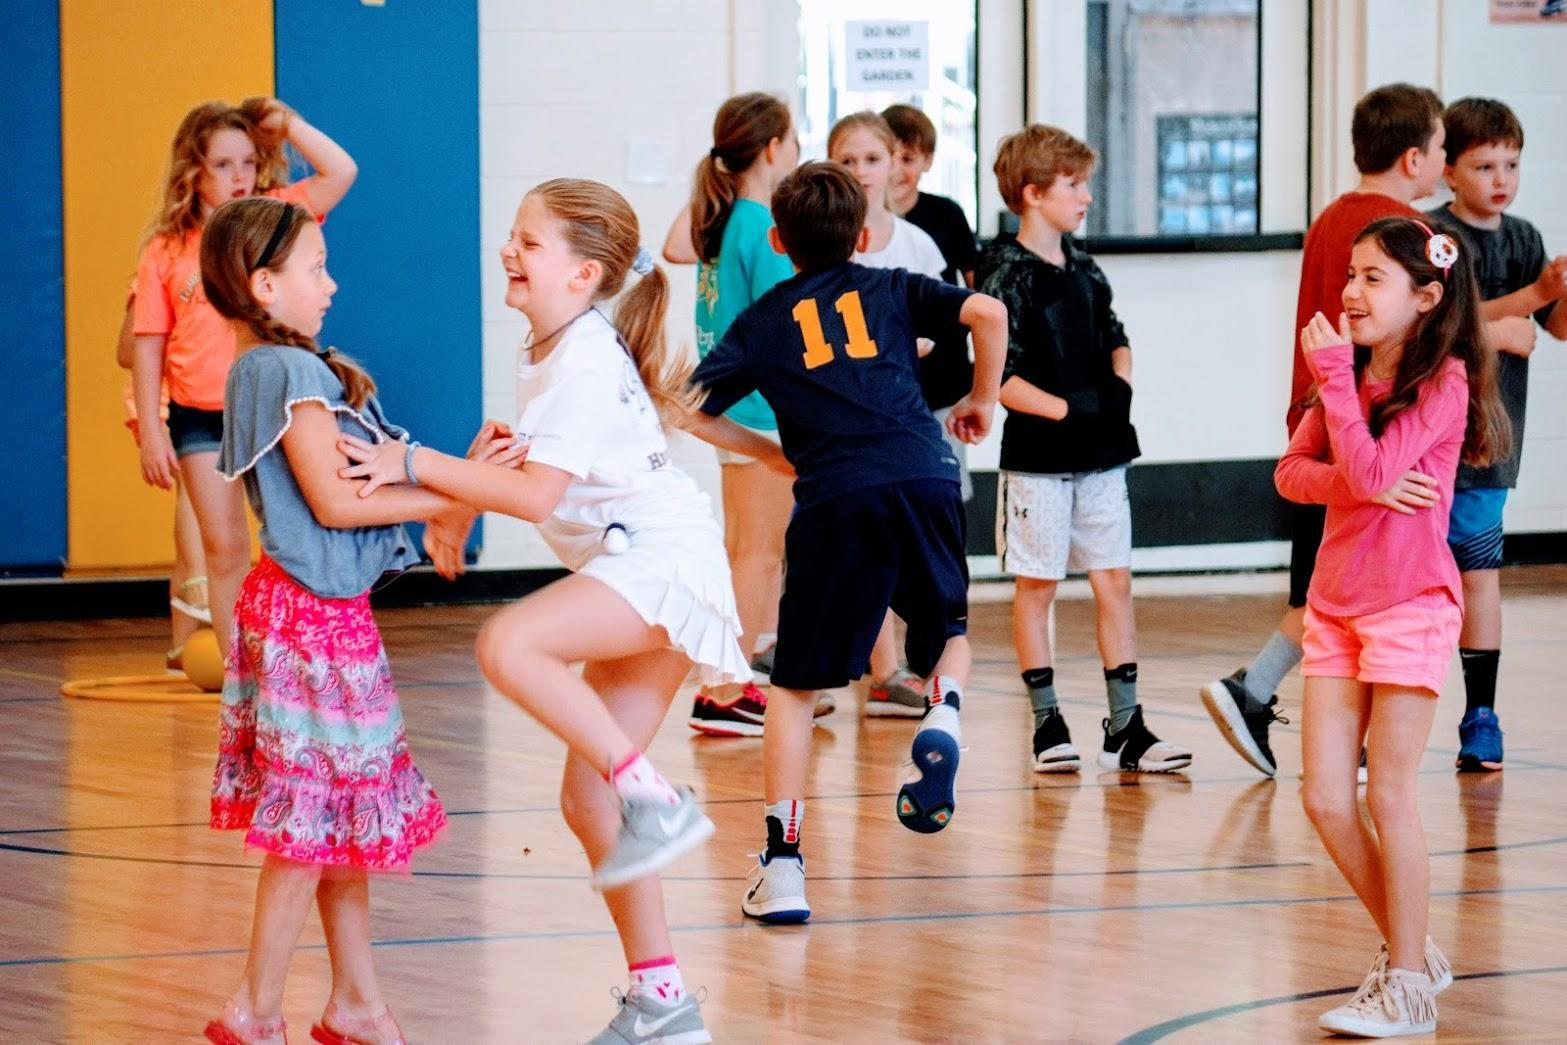 Health & Physical Education activities across campuses and in PE classes.